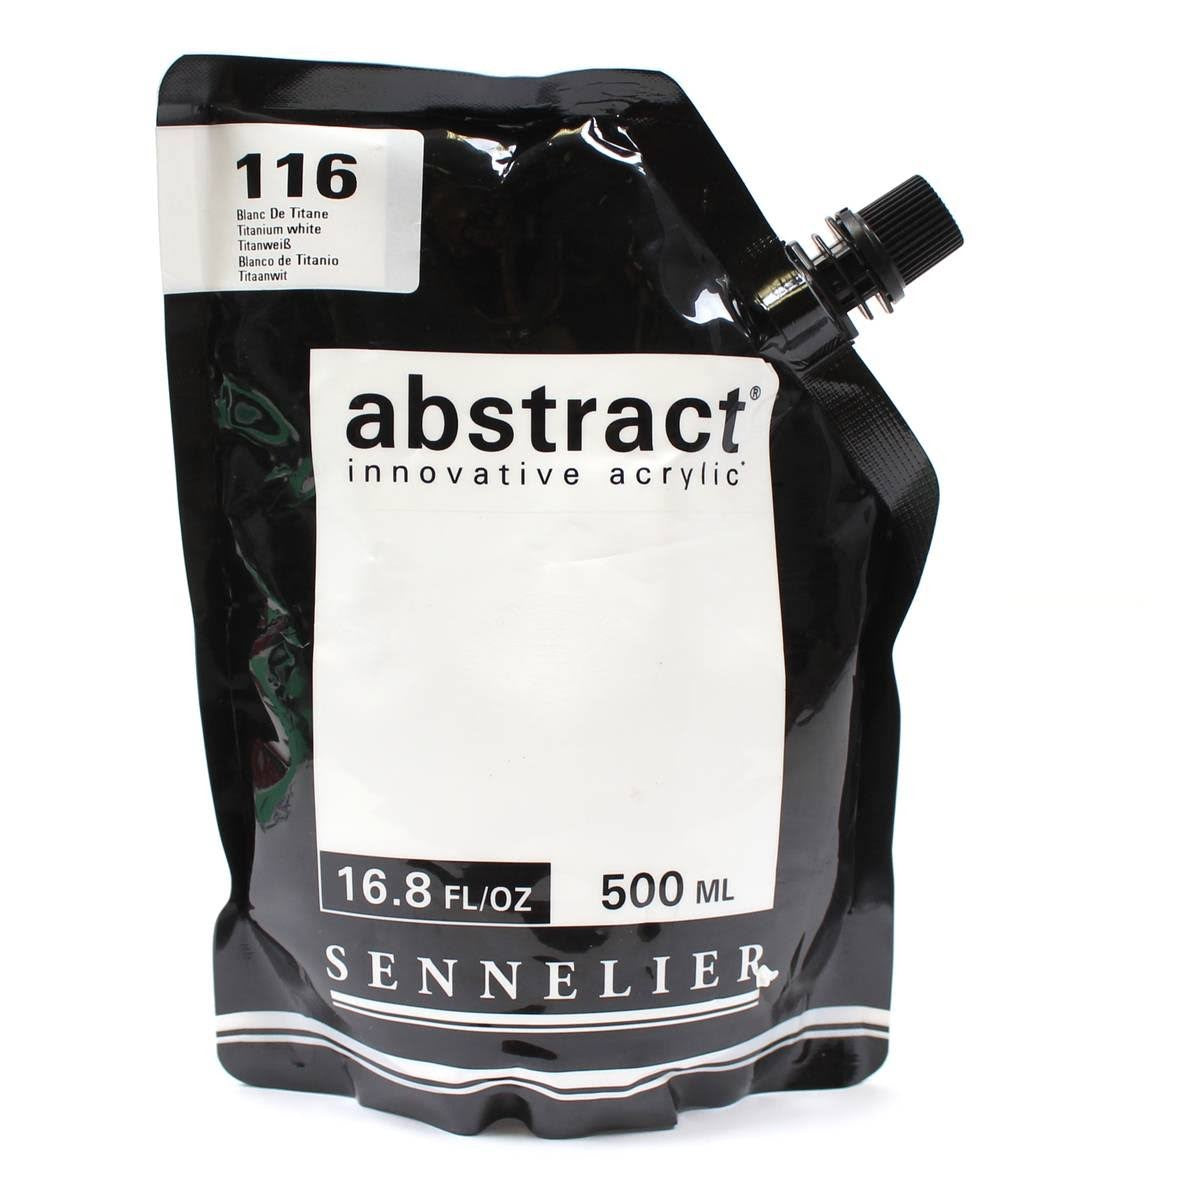 Sennelier Abstract Innovative Acrylic Paint 500ml (116 Titanium White)